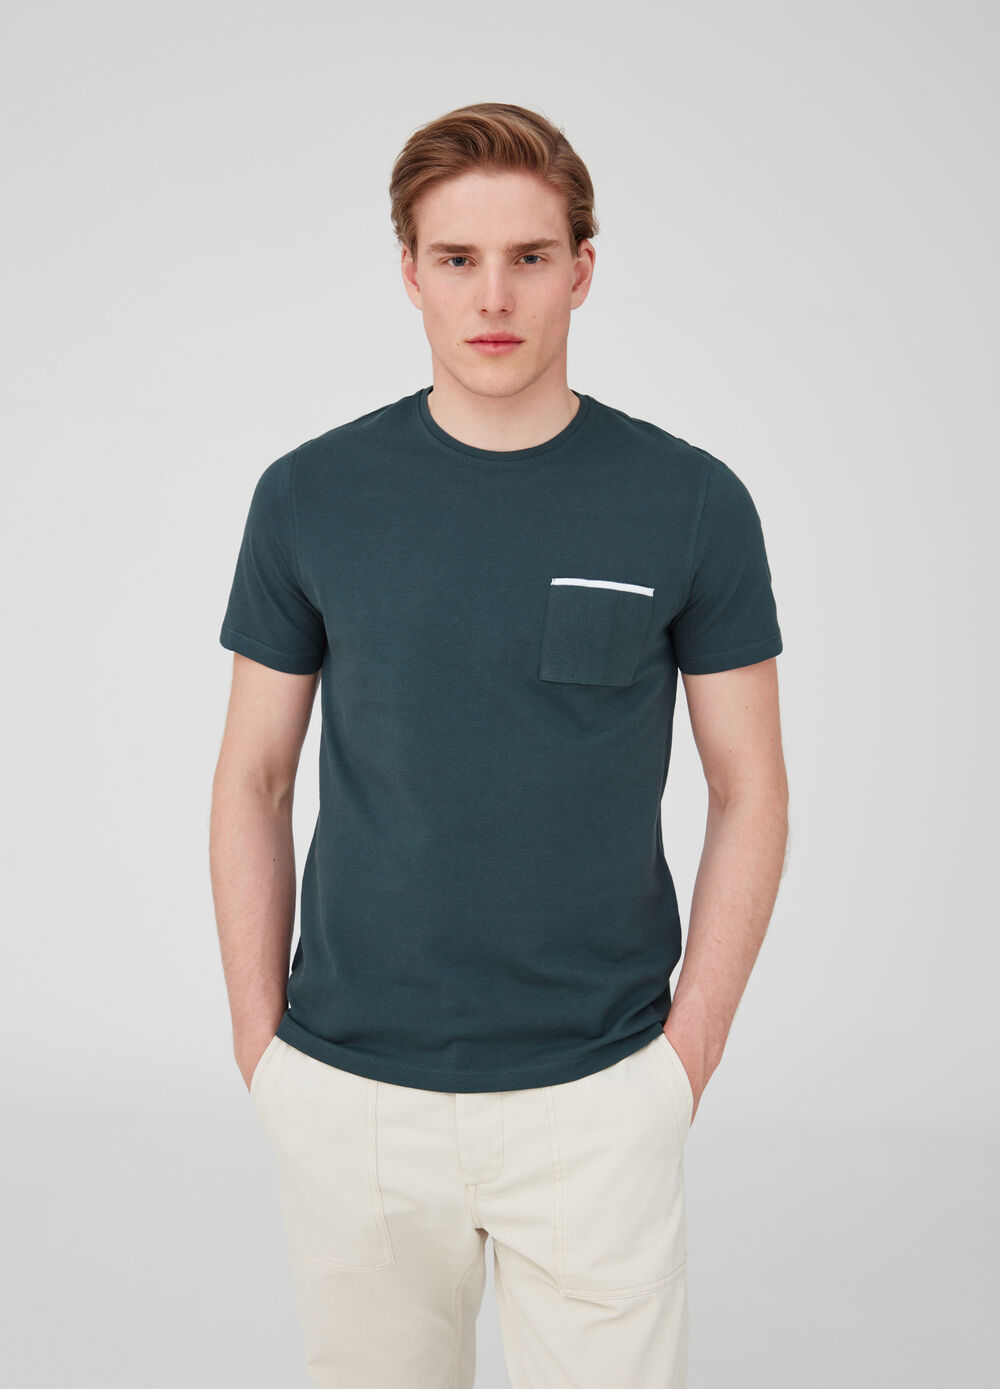 Solid colour T-shirt with piquet pocket